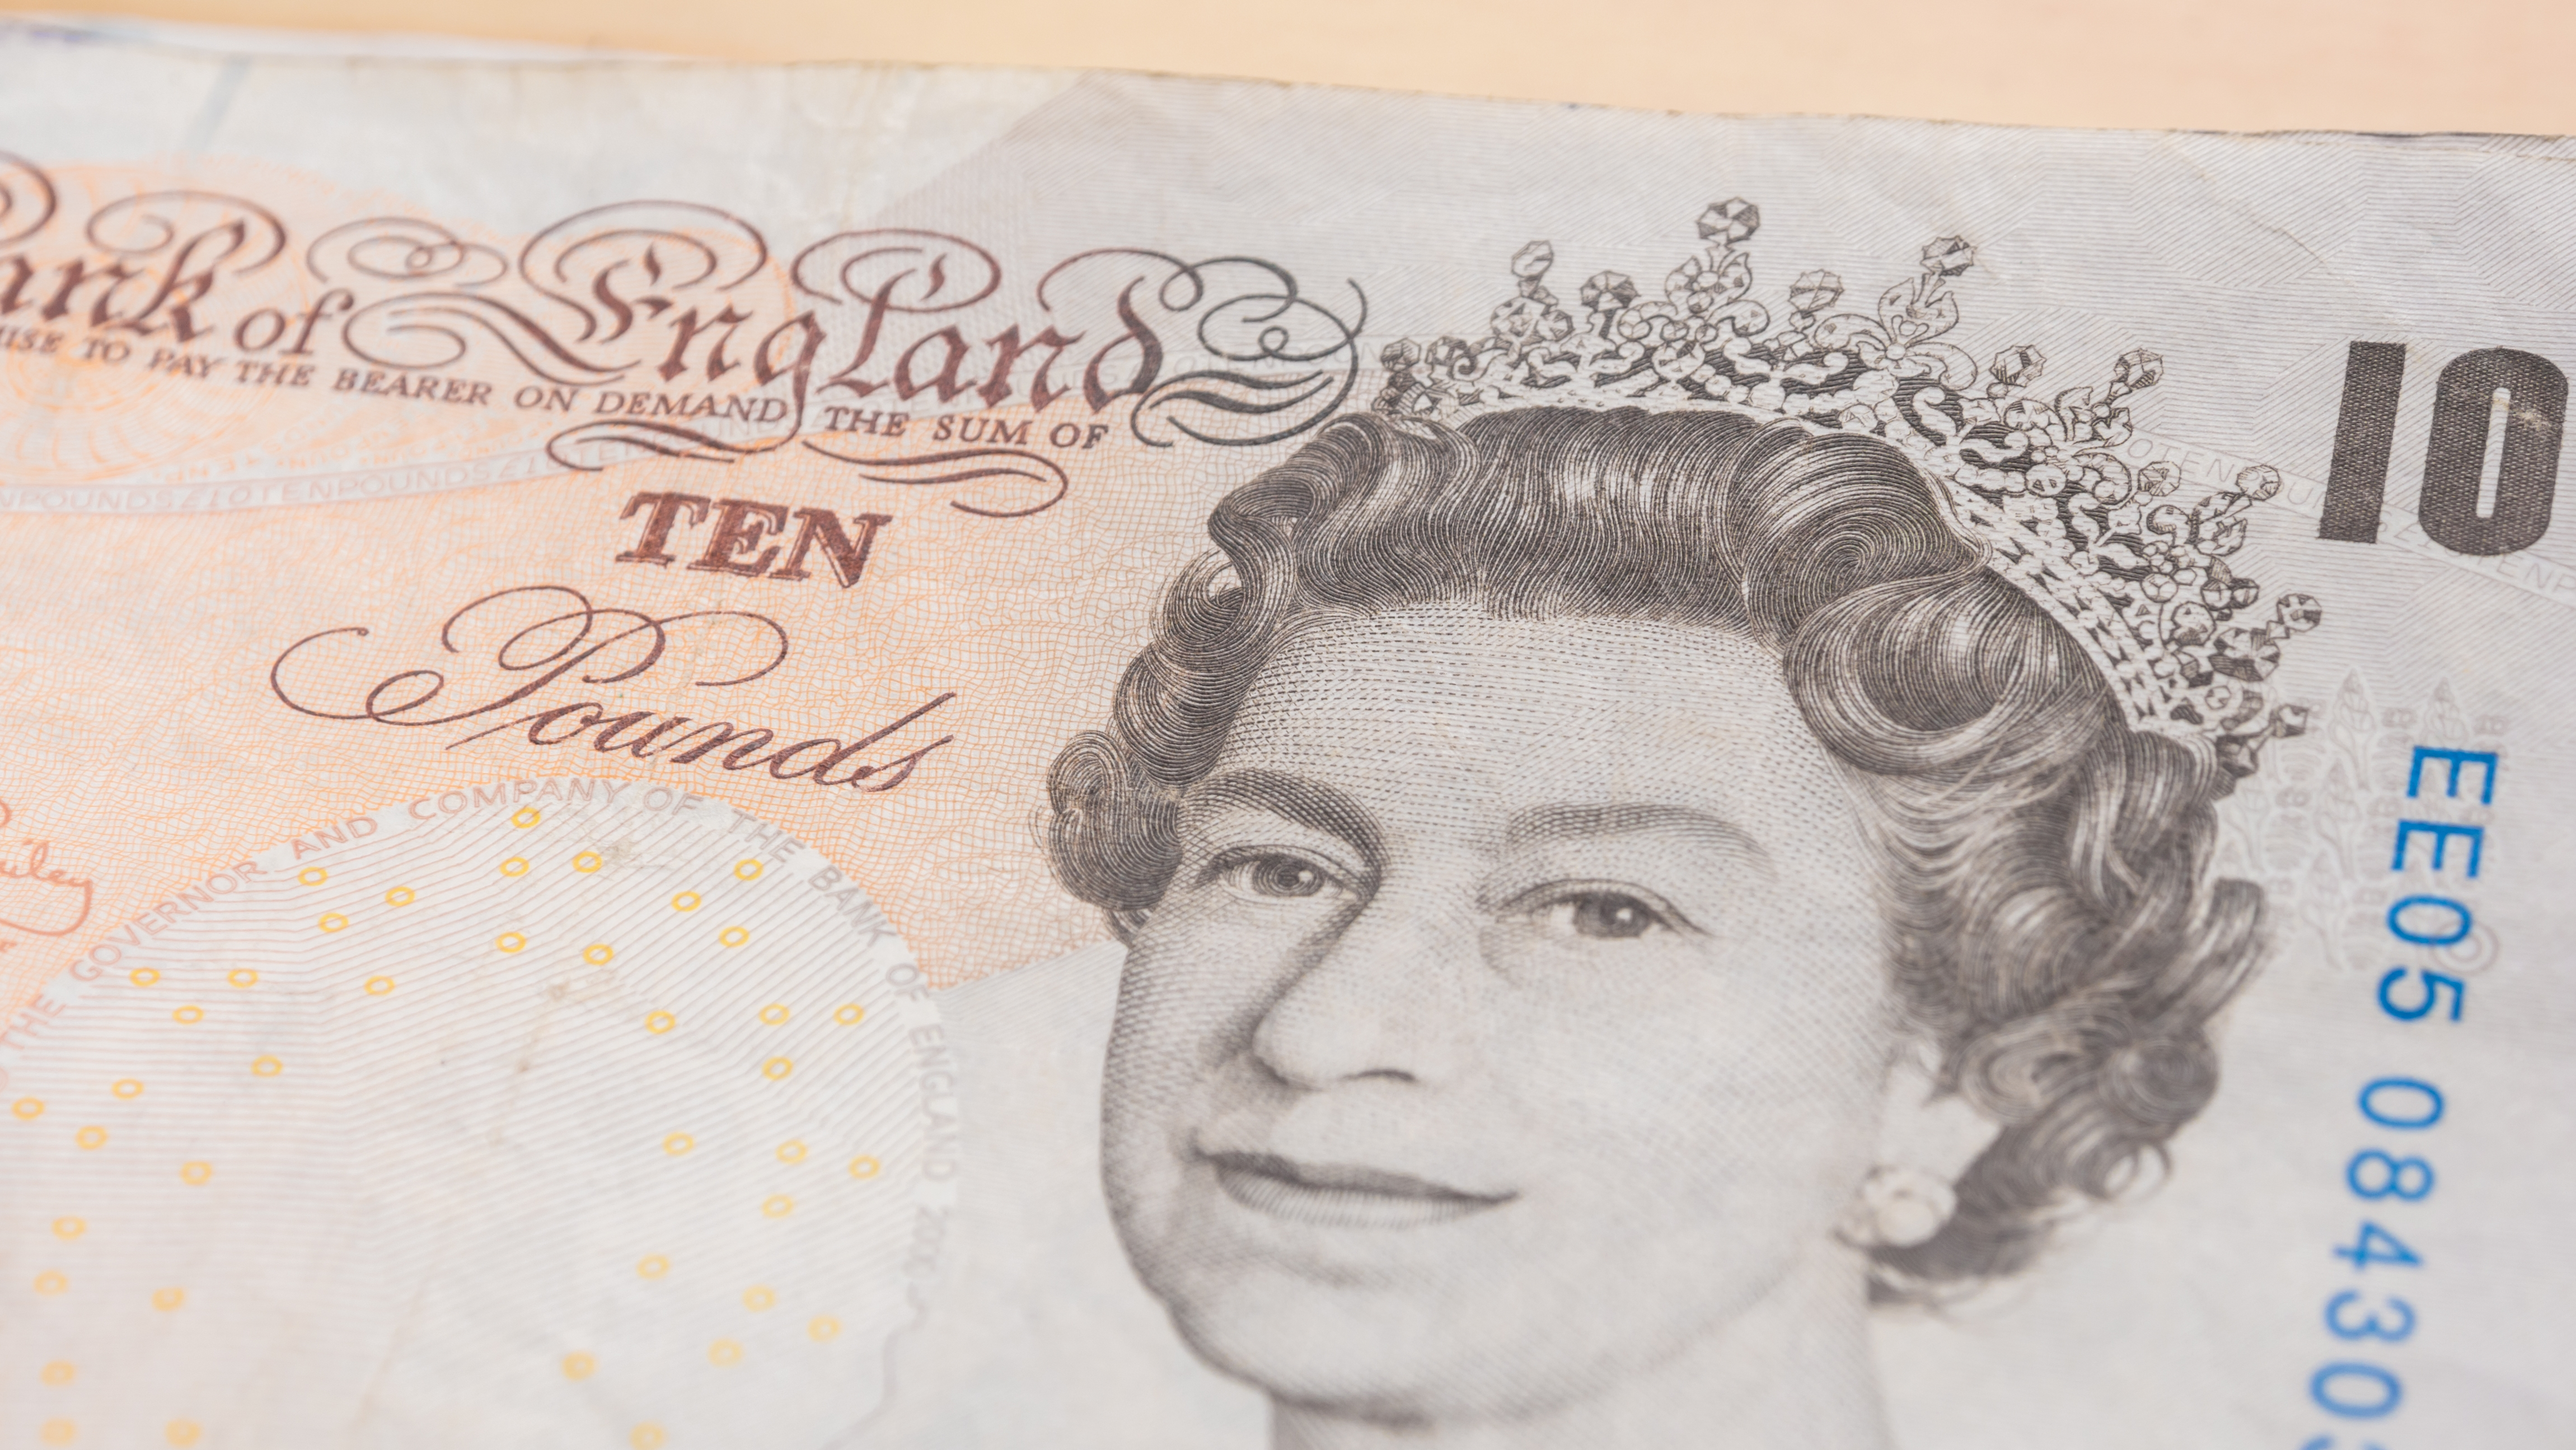 212 million paper fivers and tenners still out there - how to make them spendable again